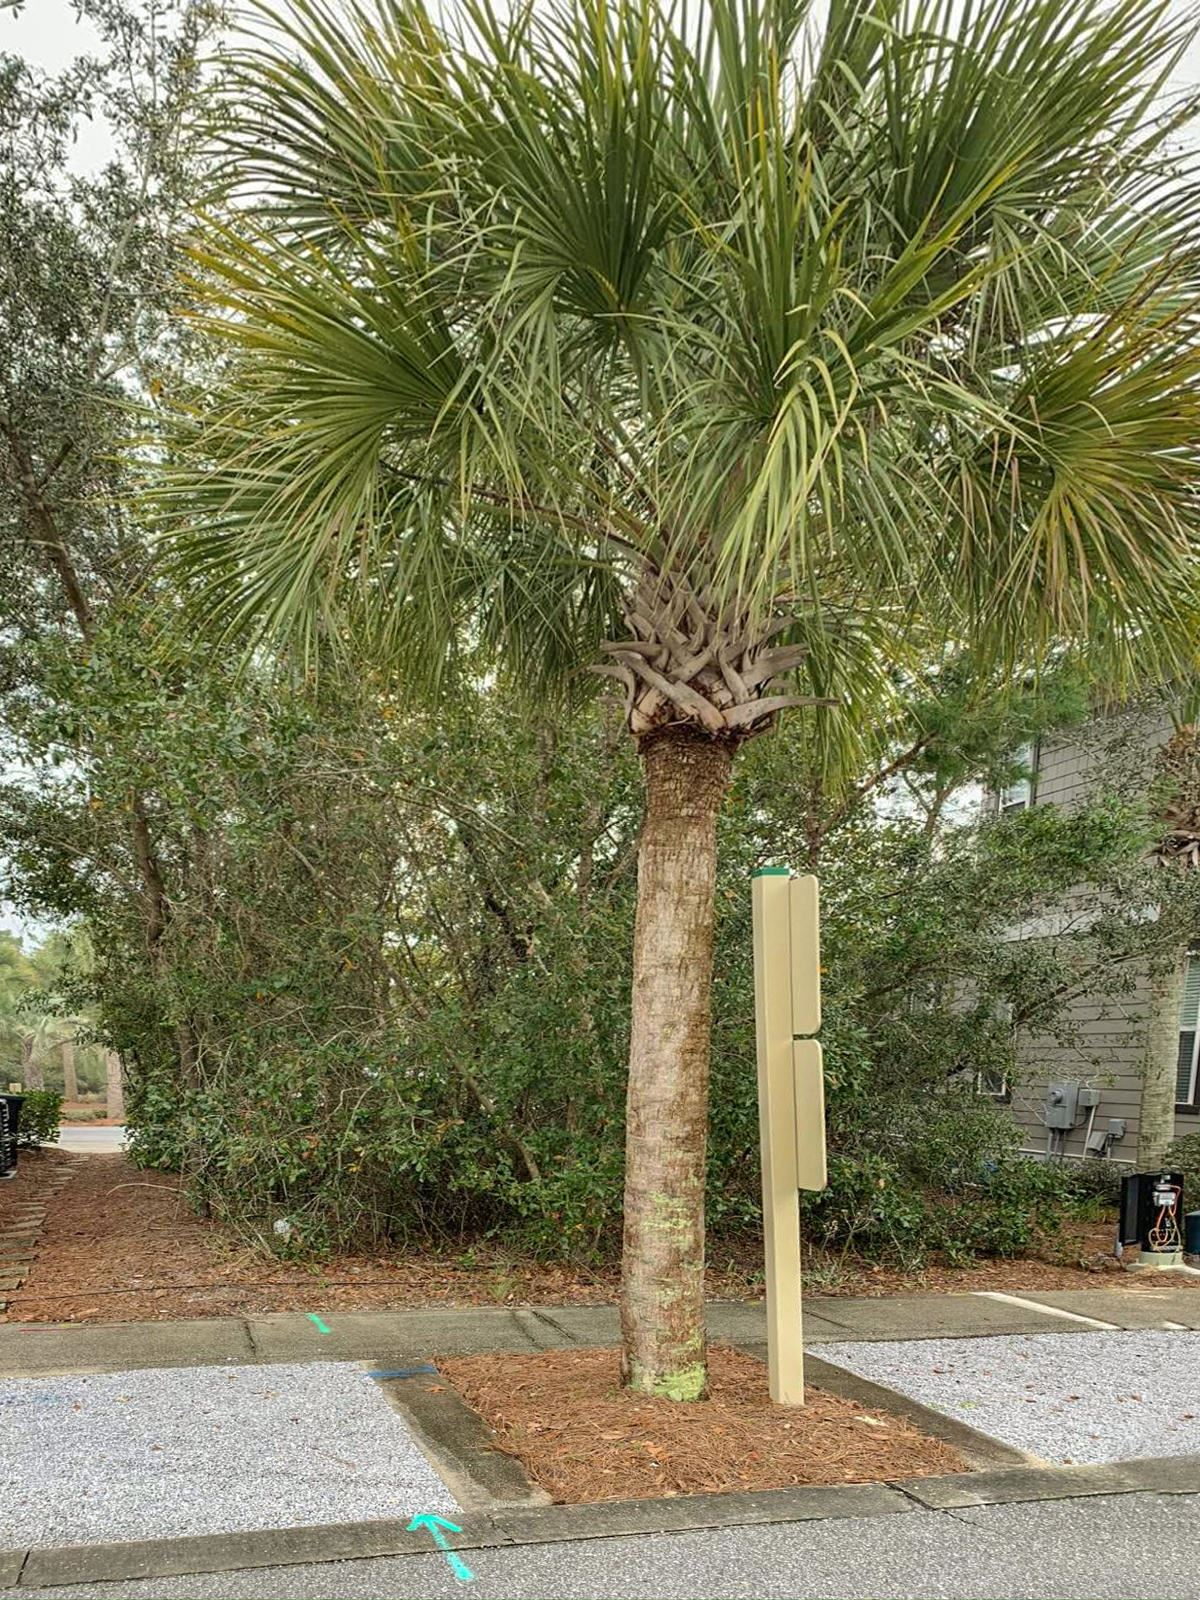 Property Image Of Lot7blkc Beach Bike Way In Inlet Beach, Fl